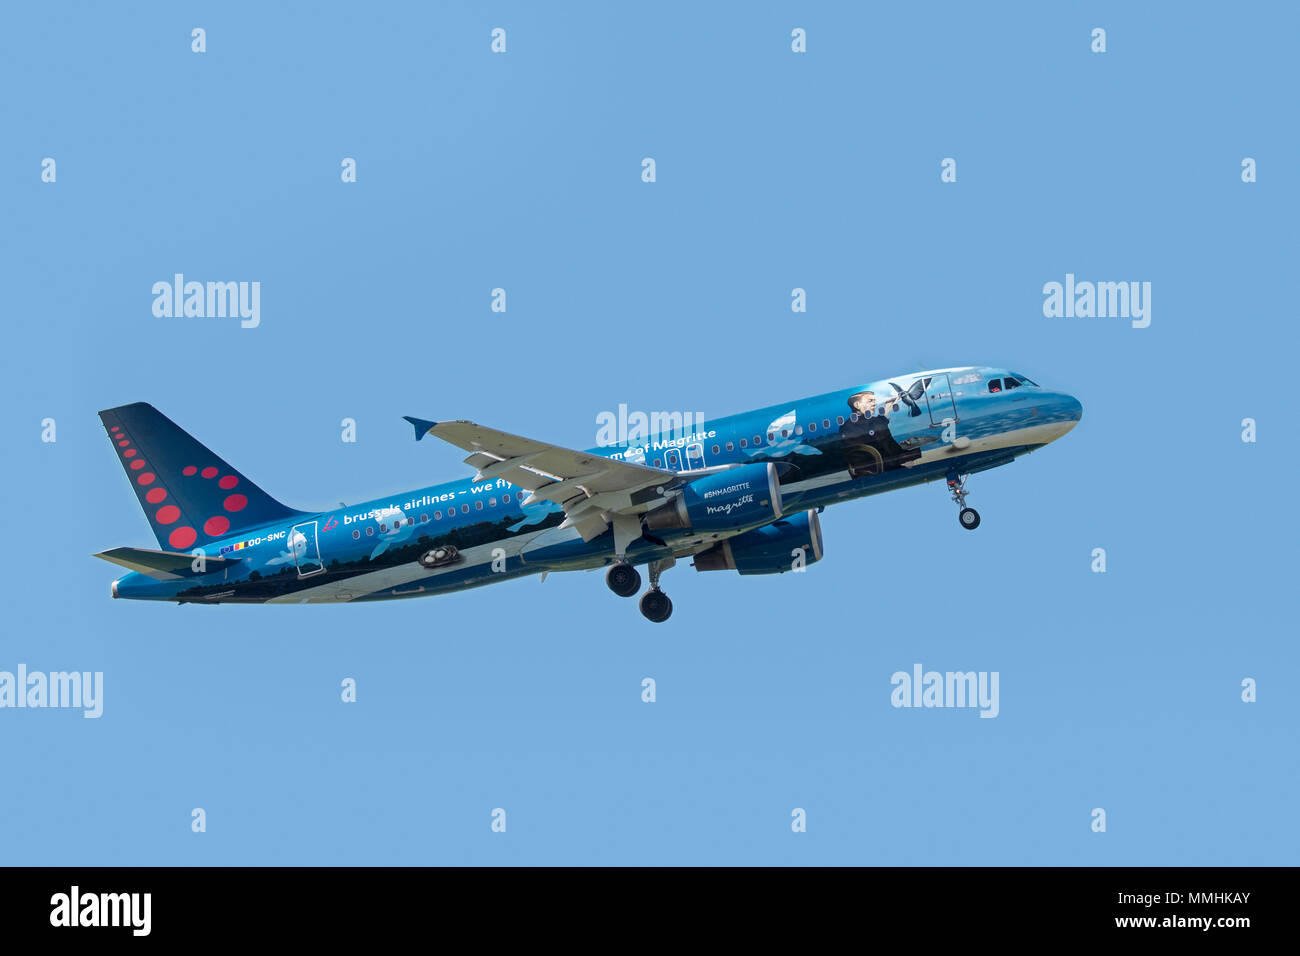 Airbus A320-214 in Magritte livery, narrow-body, commercial passenger twin-engine jet airliner from Belgian Brussels Airlines in flight - Stock Image